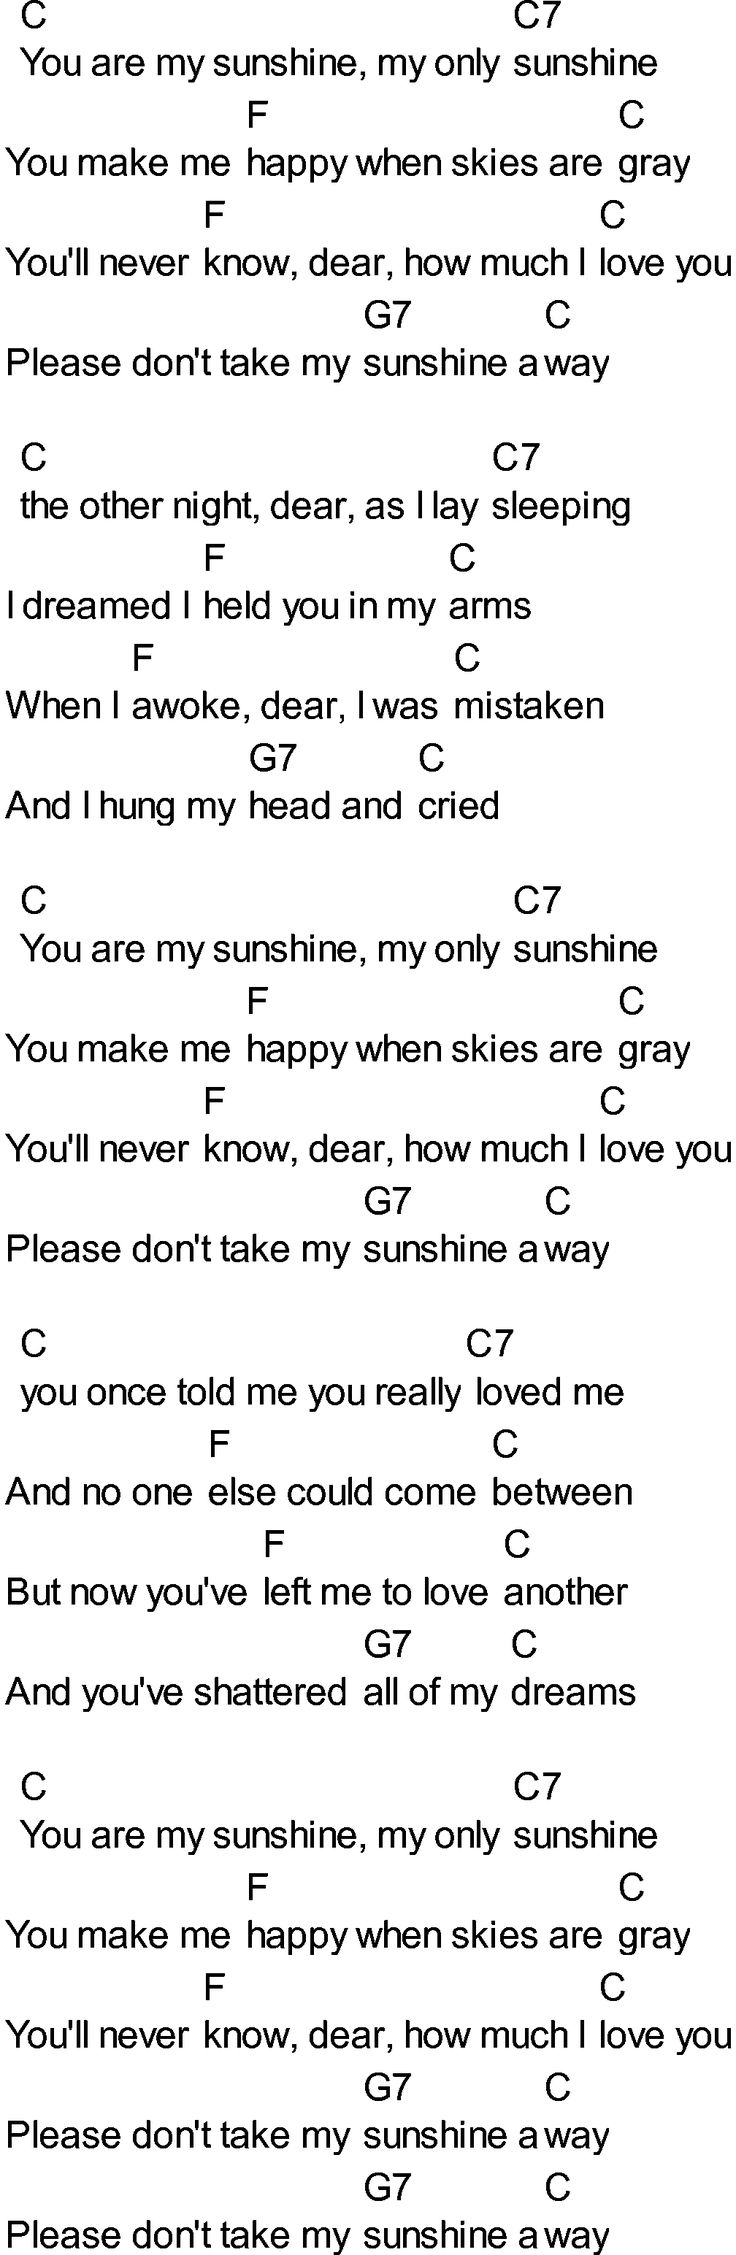 49 best ukulele tabs images on pinterest music lyrics banjos bluegrass songs with chords you are my sunshine ukulele hexwebz Image collections